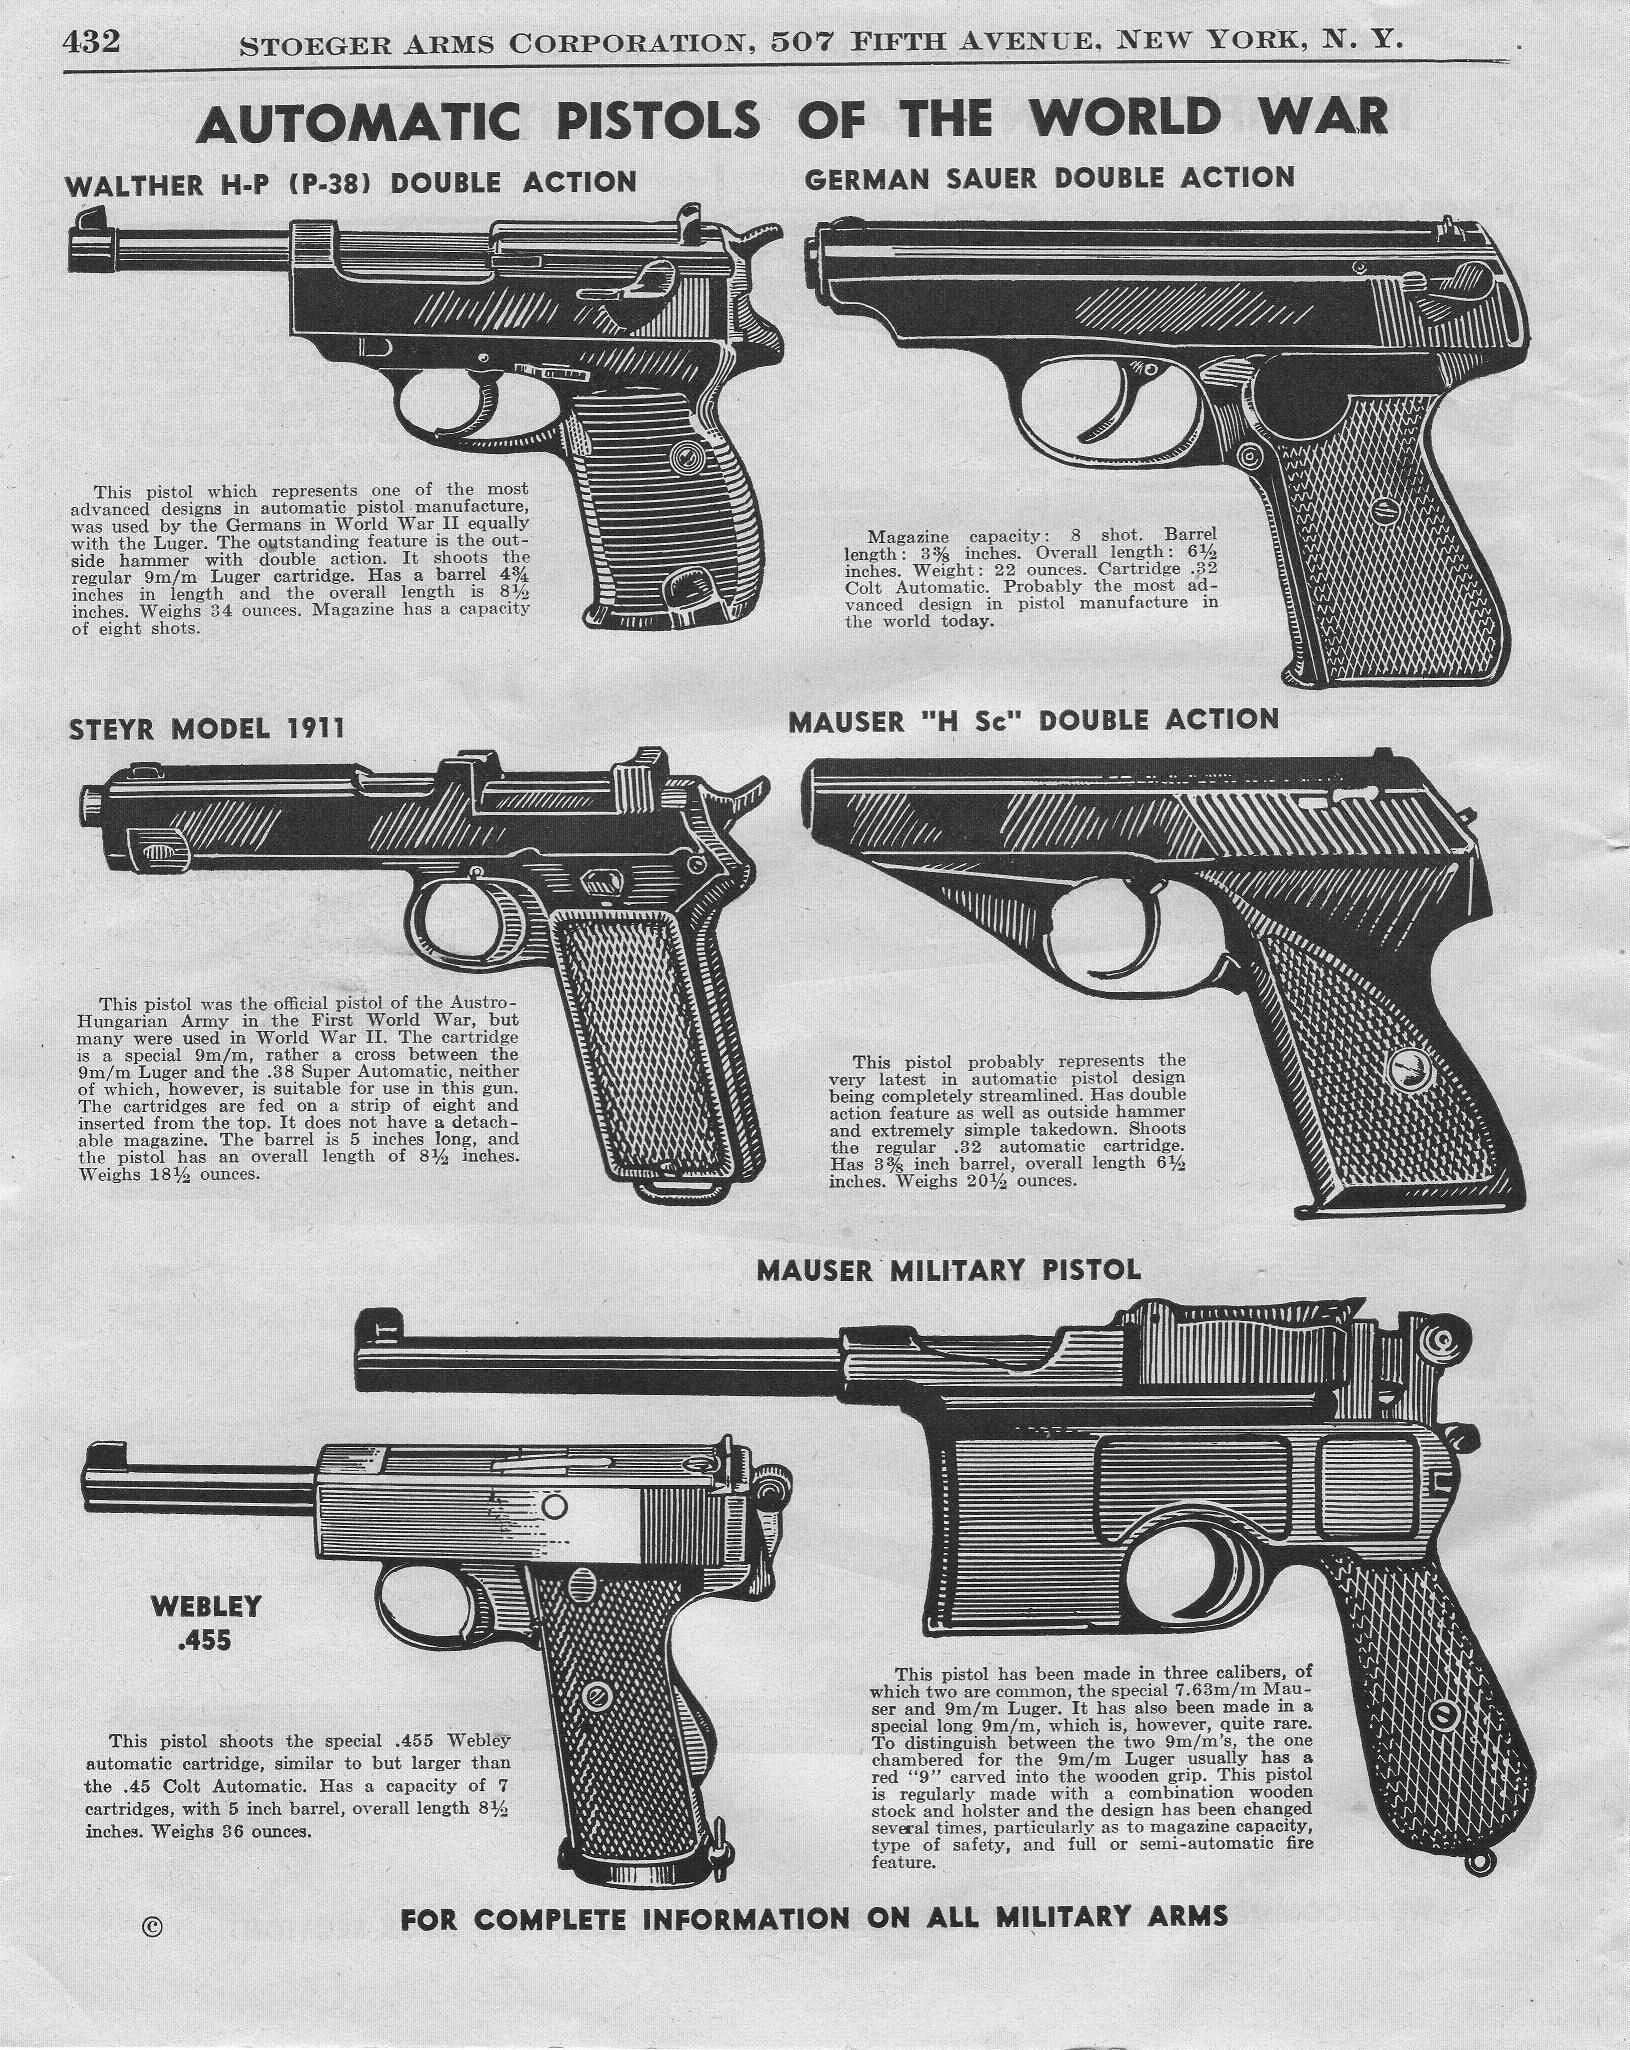 world war 1 weapons - Google Search | Weapons of WWI | Pinterest ...